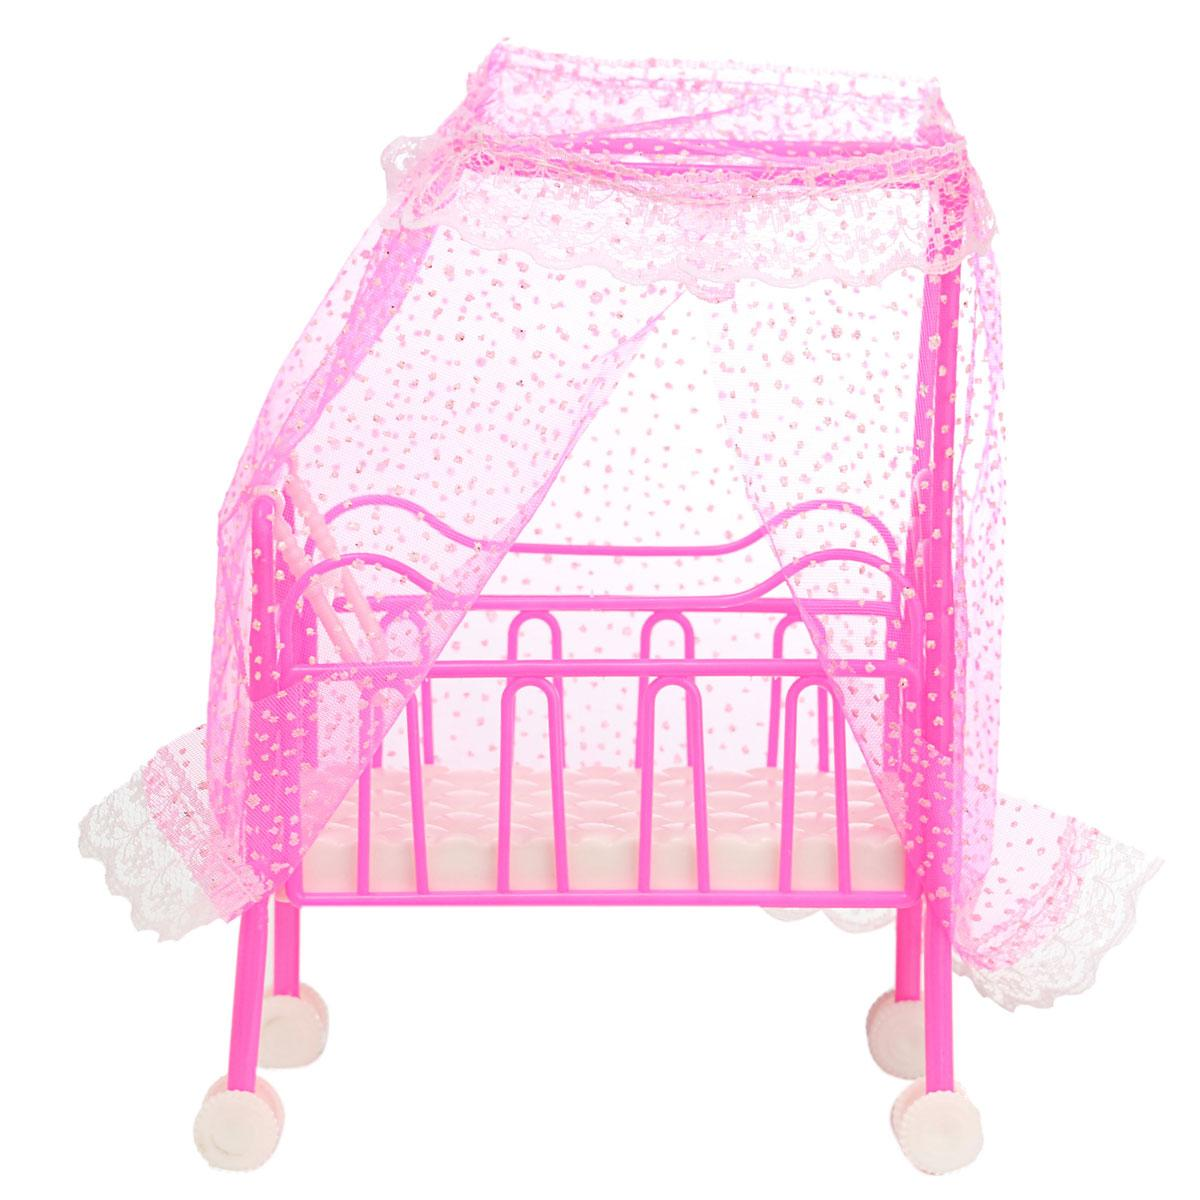 Baby bed accessories - Cute Doll Baby Bed For Princess Dollhouse Plastic Mini Cute Bed Doll House Furniture Toy Fantasy